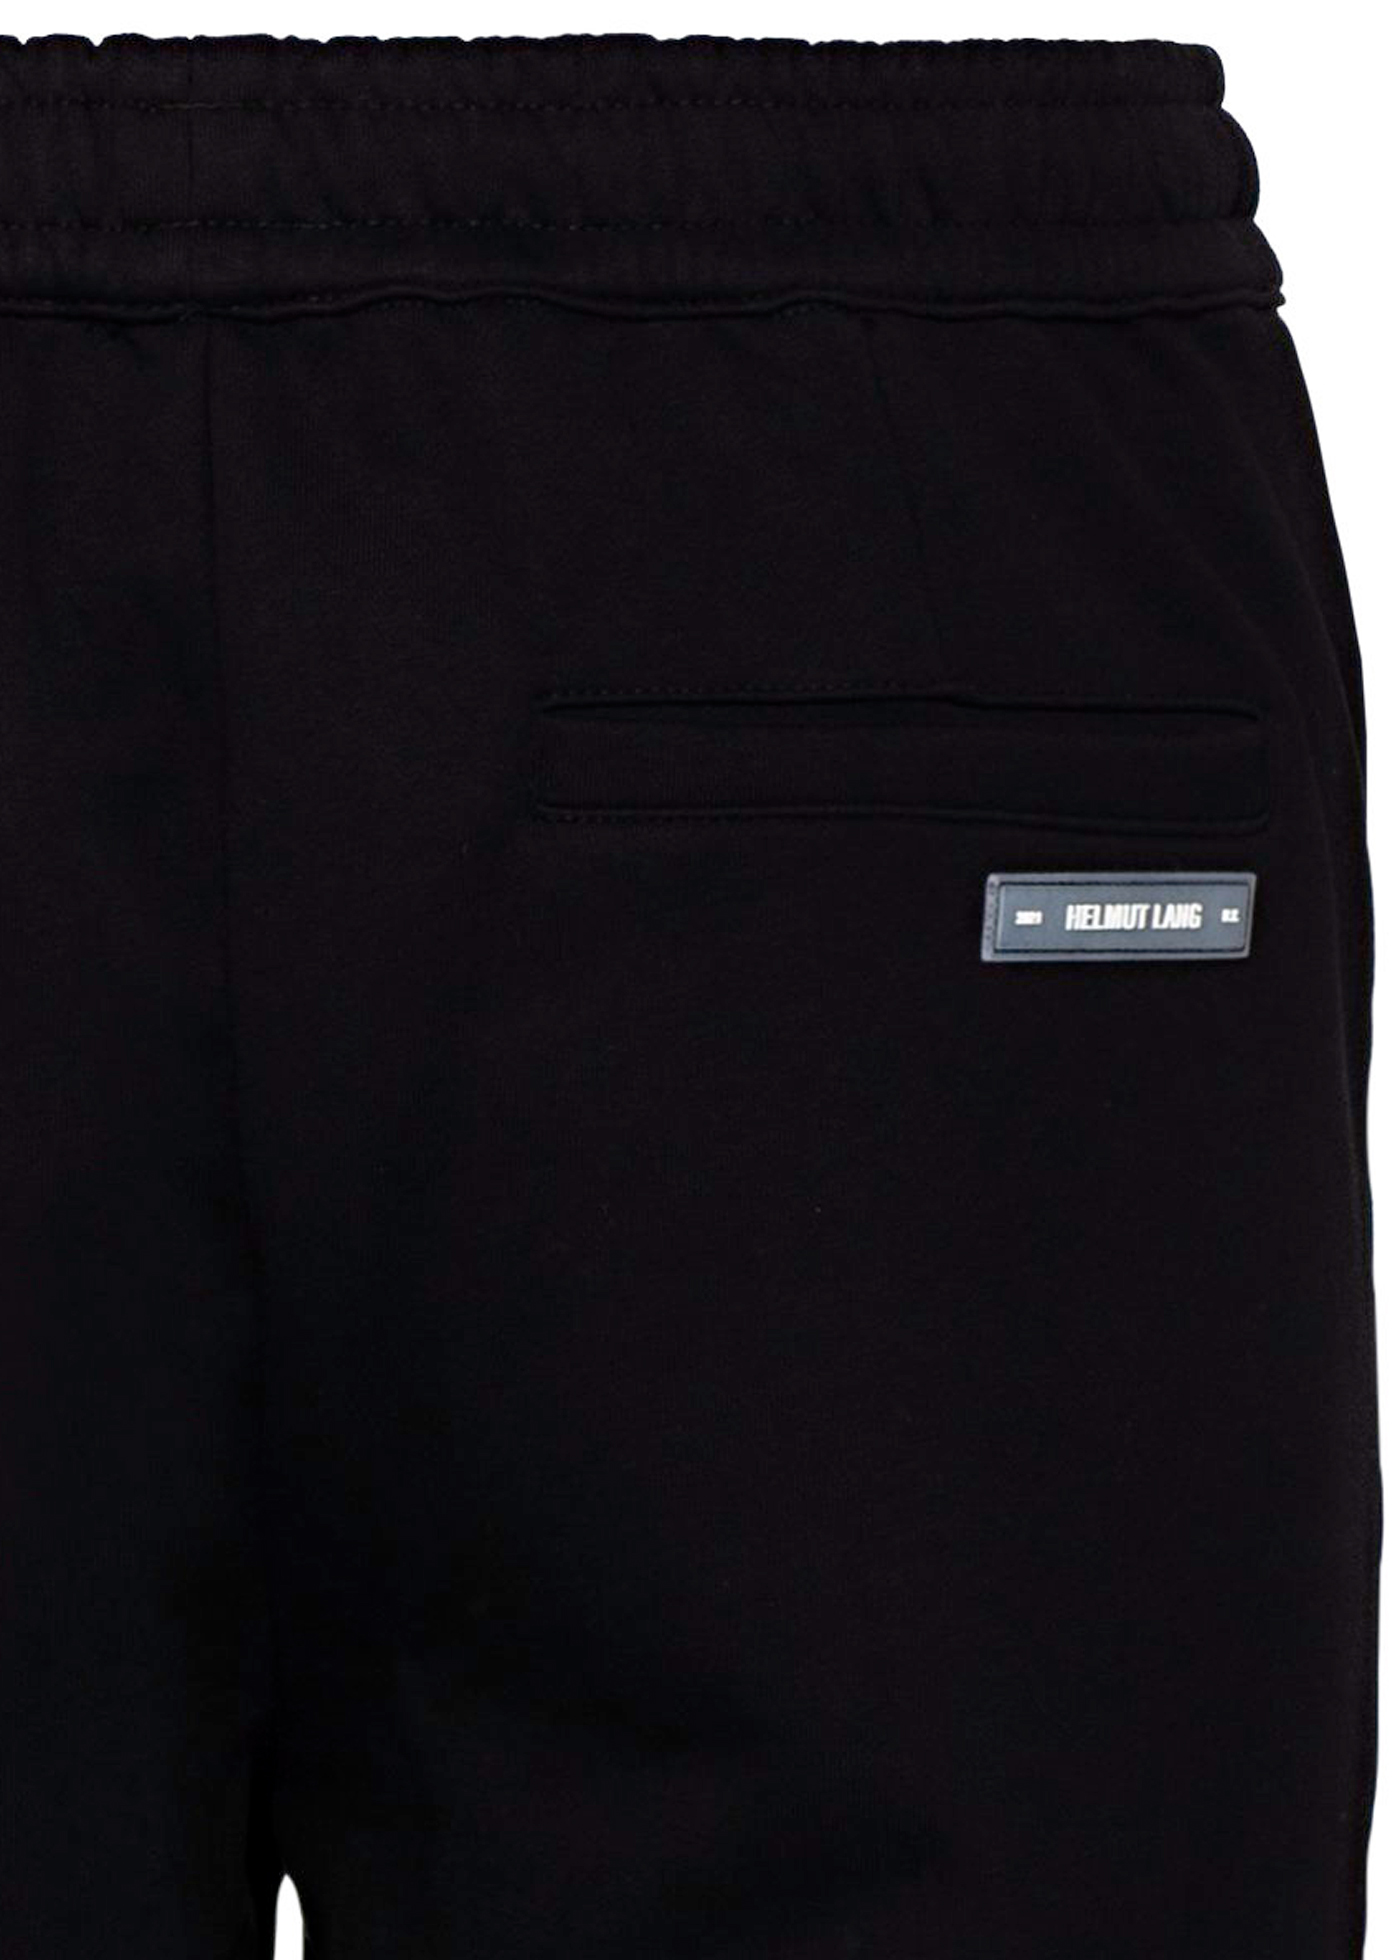 PANEL SWEATPANT.COLO image number 3